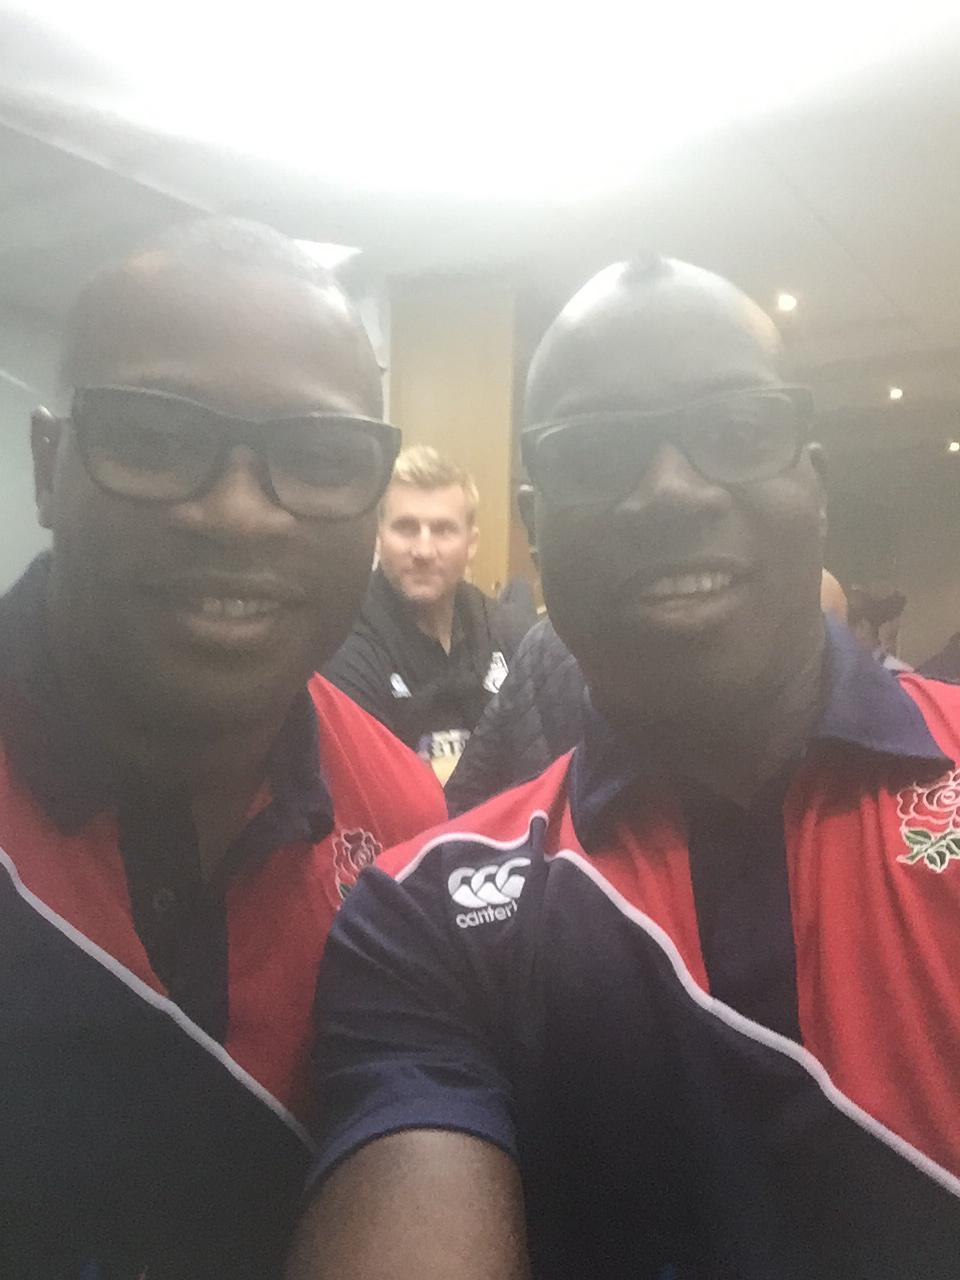 Just to prove we are not the same person @ugomonye lol http://t.co/J0lIe8jabx